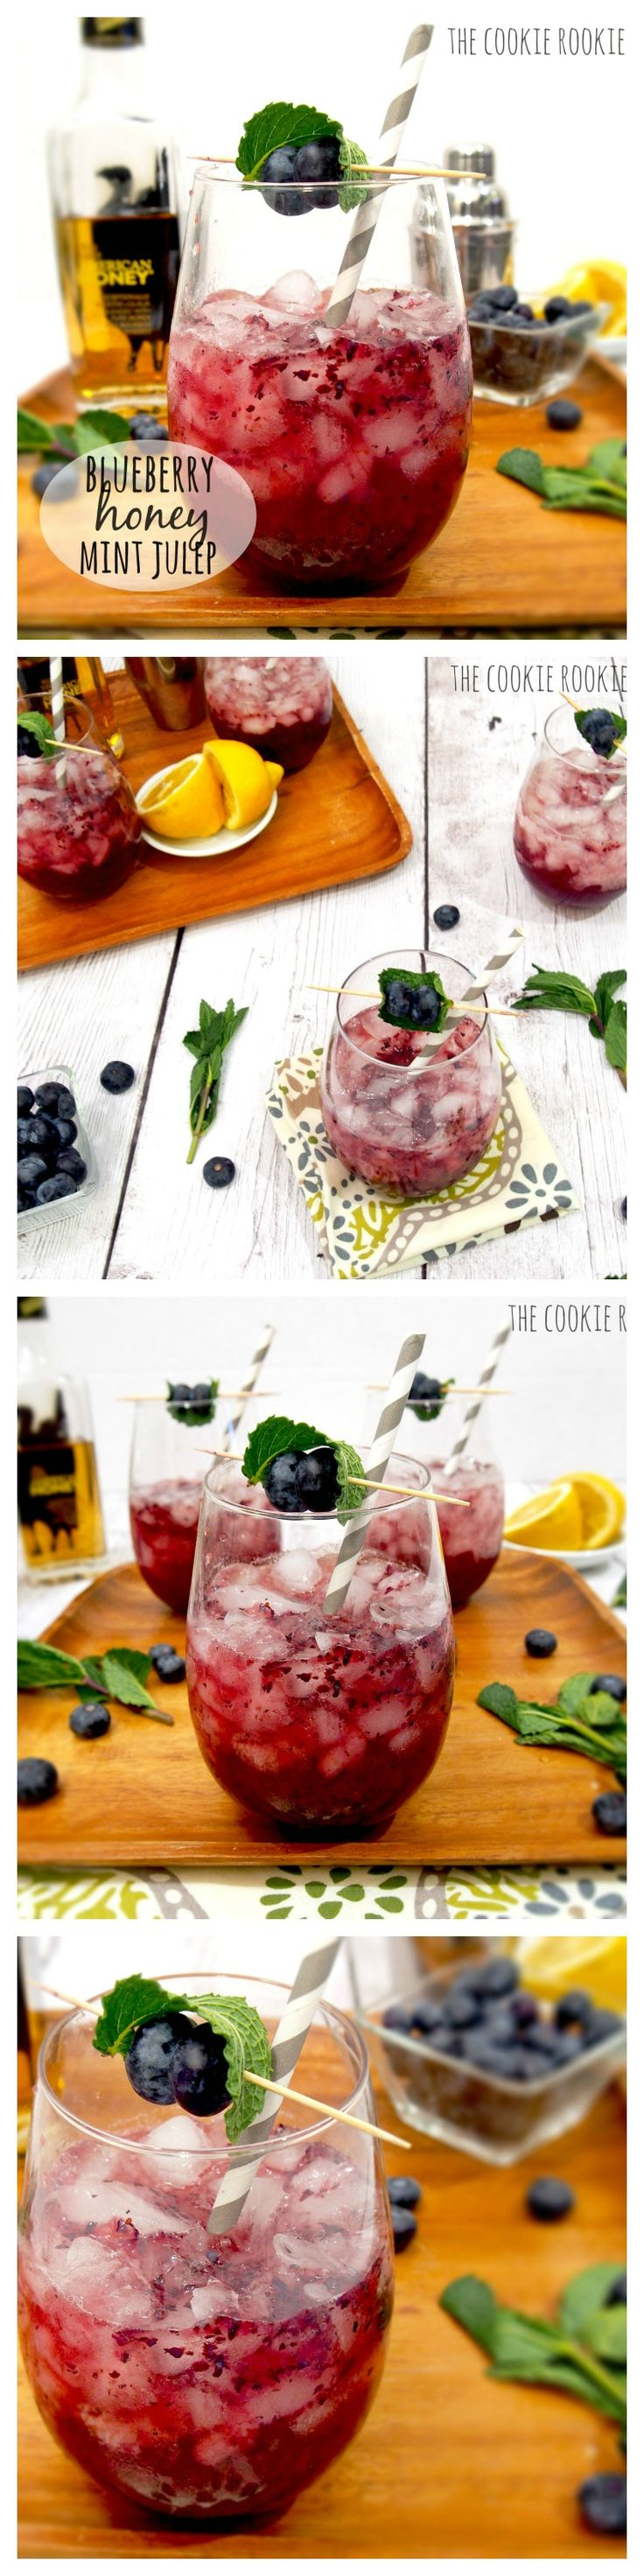 Blueberry & Honey Mint Juleps!! YUM! Kentucky Derby here we come.. Or have a derby inspired brunch at the very least!